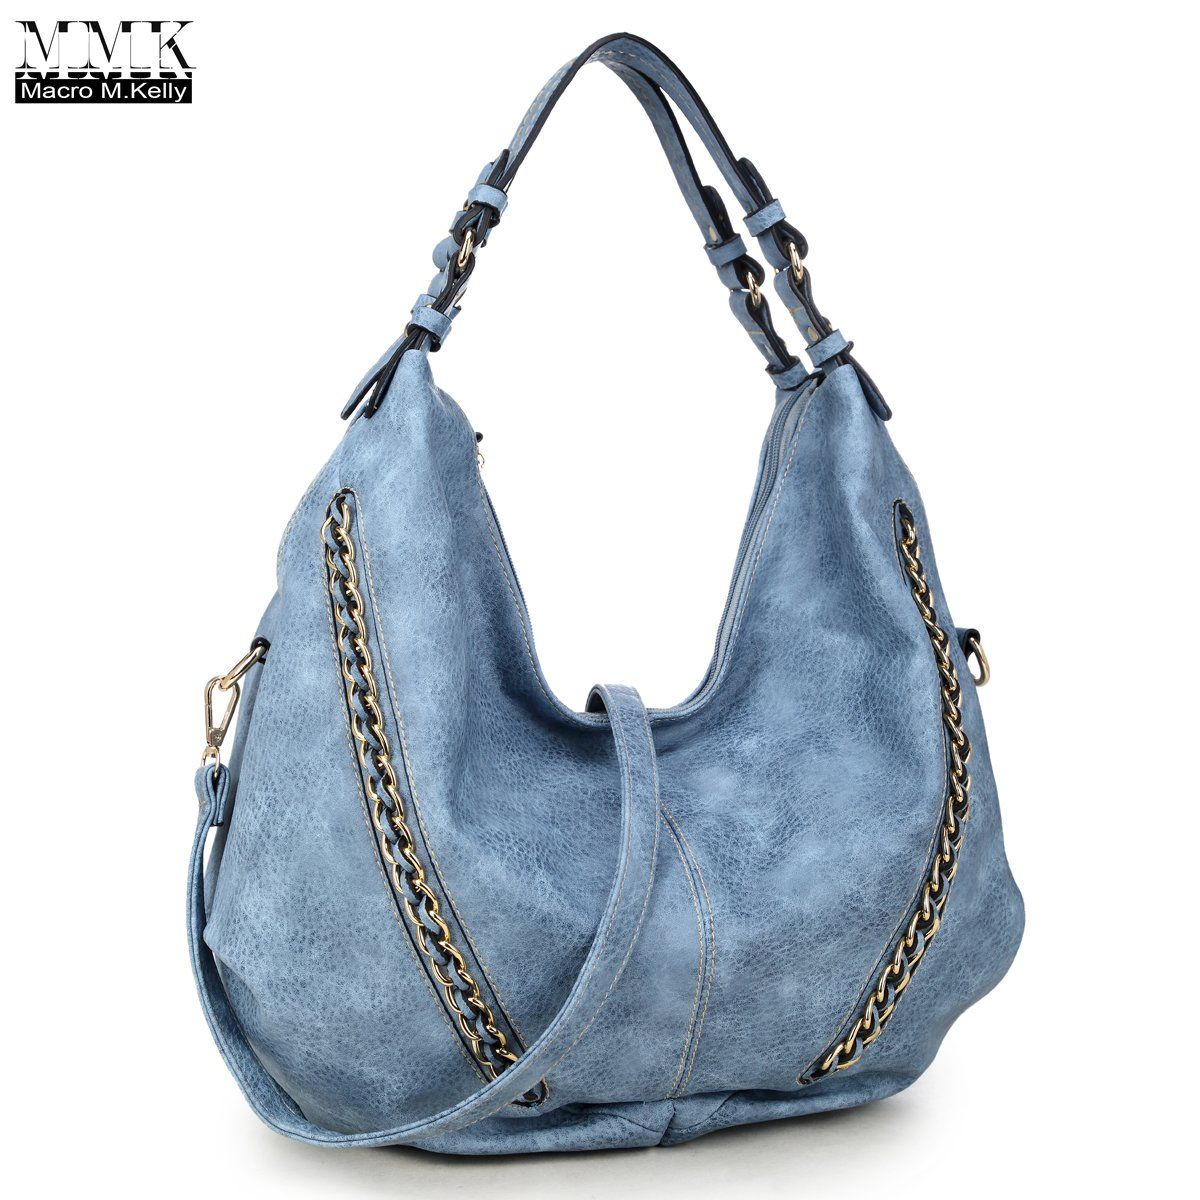 MMK Collection Women Soft Water Wash PU Leather Vintage(6332) Top Dual Handle Crossbody Fashion Cowboy Young Style Chained Hobo Shoulder Bag Handbag (Blue)